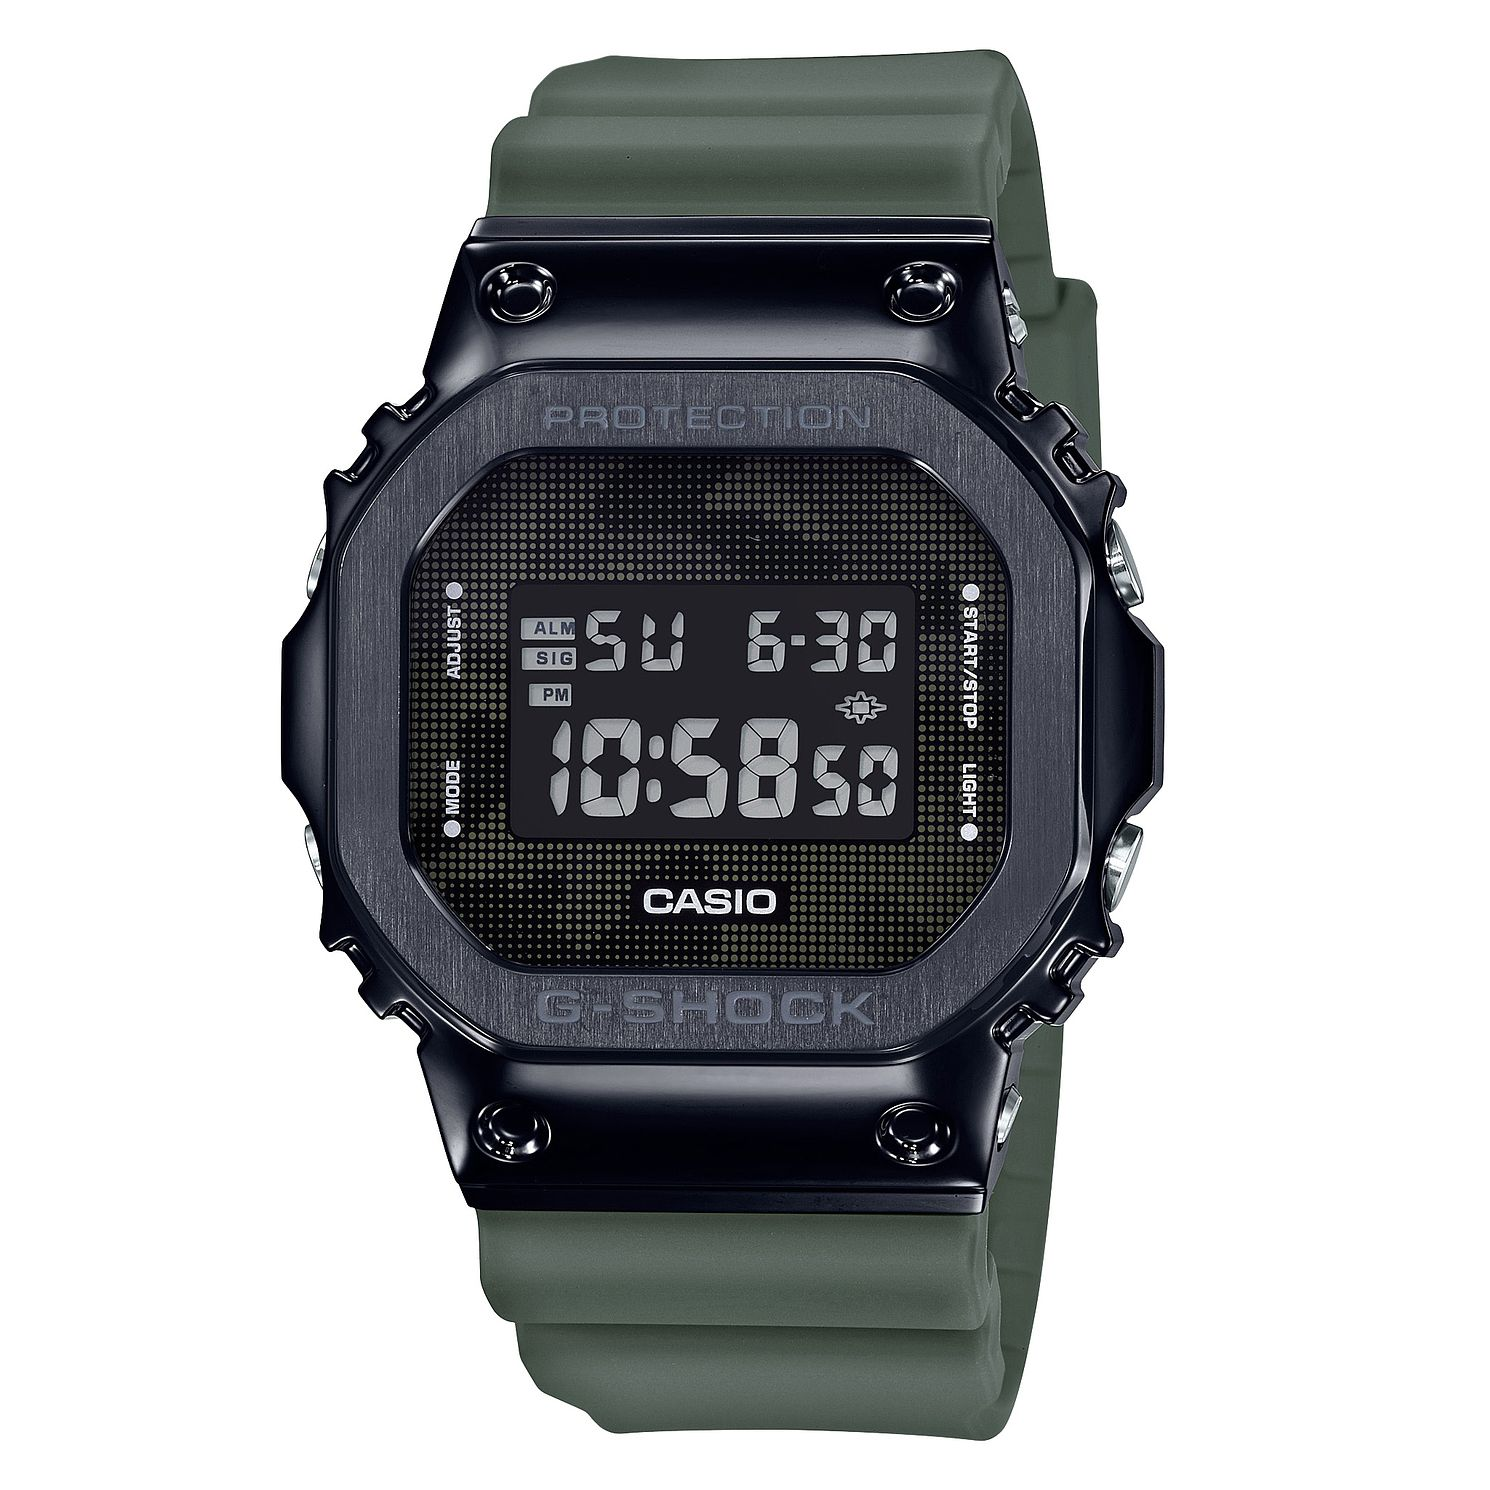 Casio G-Shock Metal Men's Green Resin Strap Watch - Product number 5091160